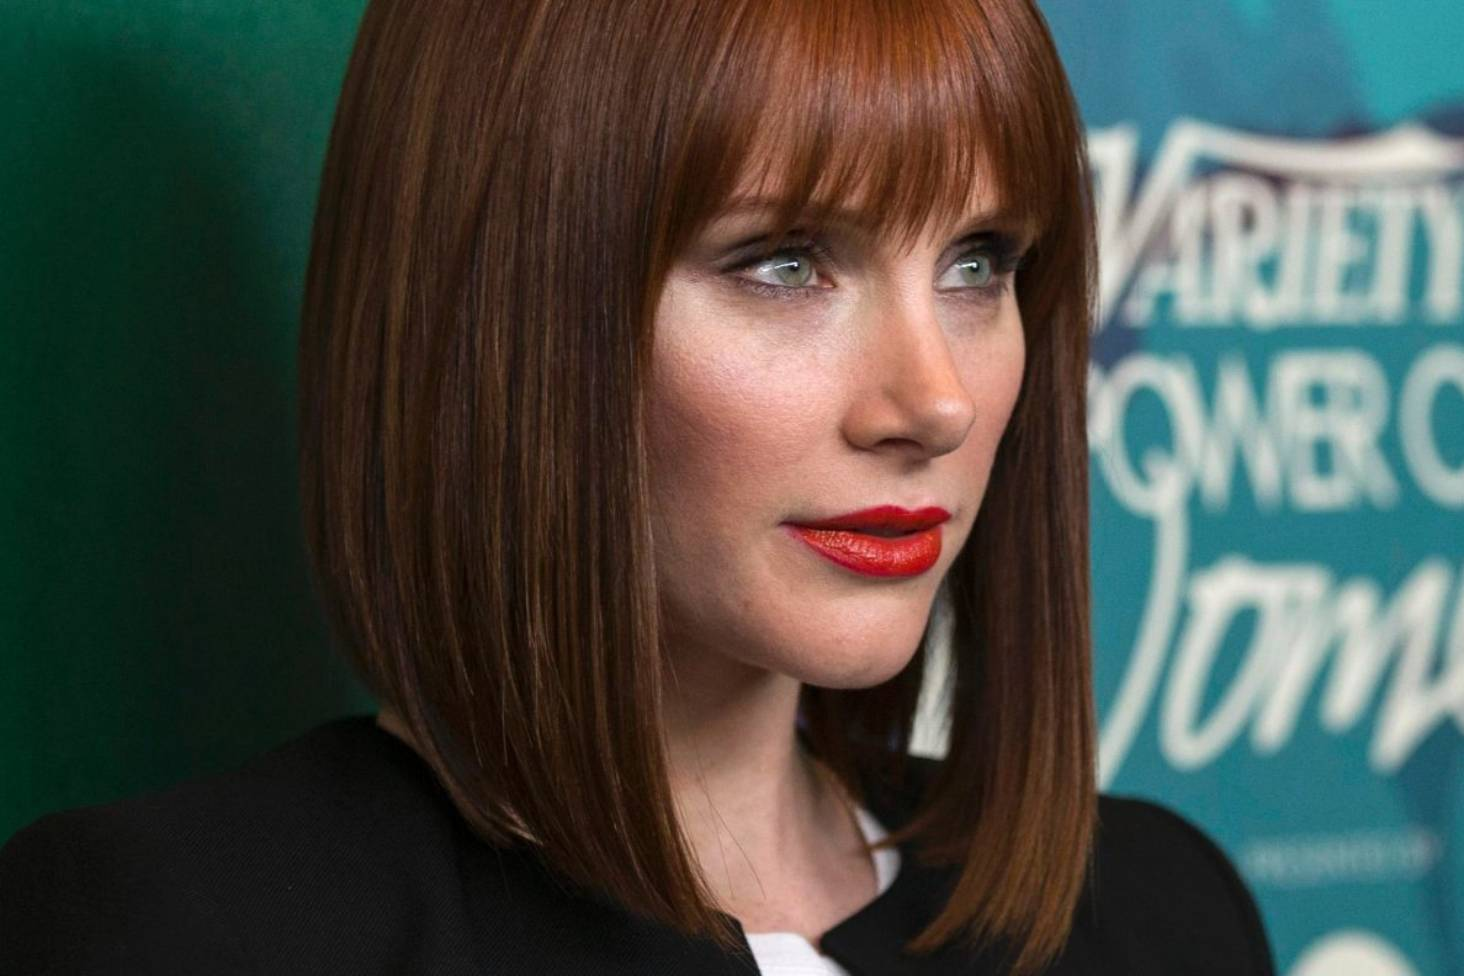 Jurassic World S Bryce Dallas Howard I Was Just Begging For A Chance To Audition Stuff Co Nz Fallen kingdom and pete's dragon. jurassic world s bryce dallas howard